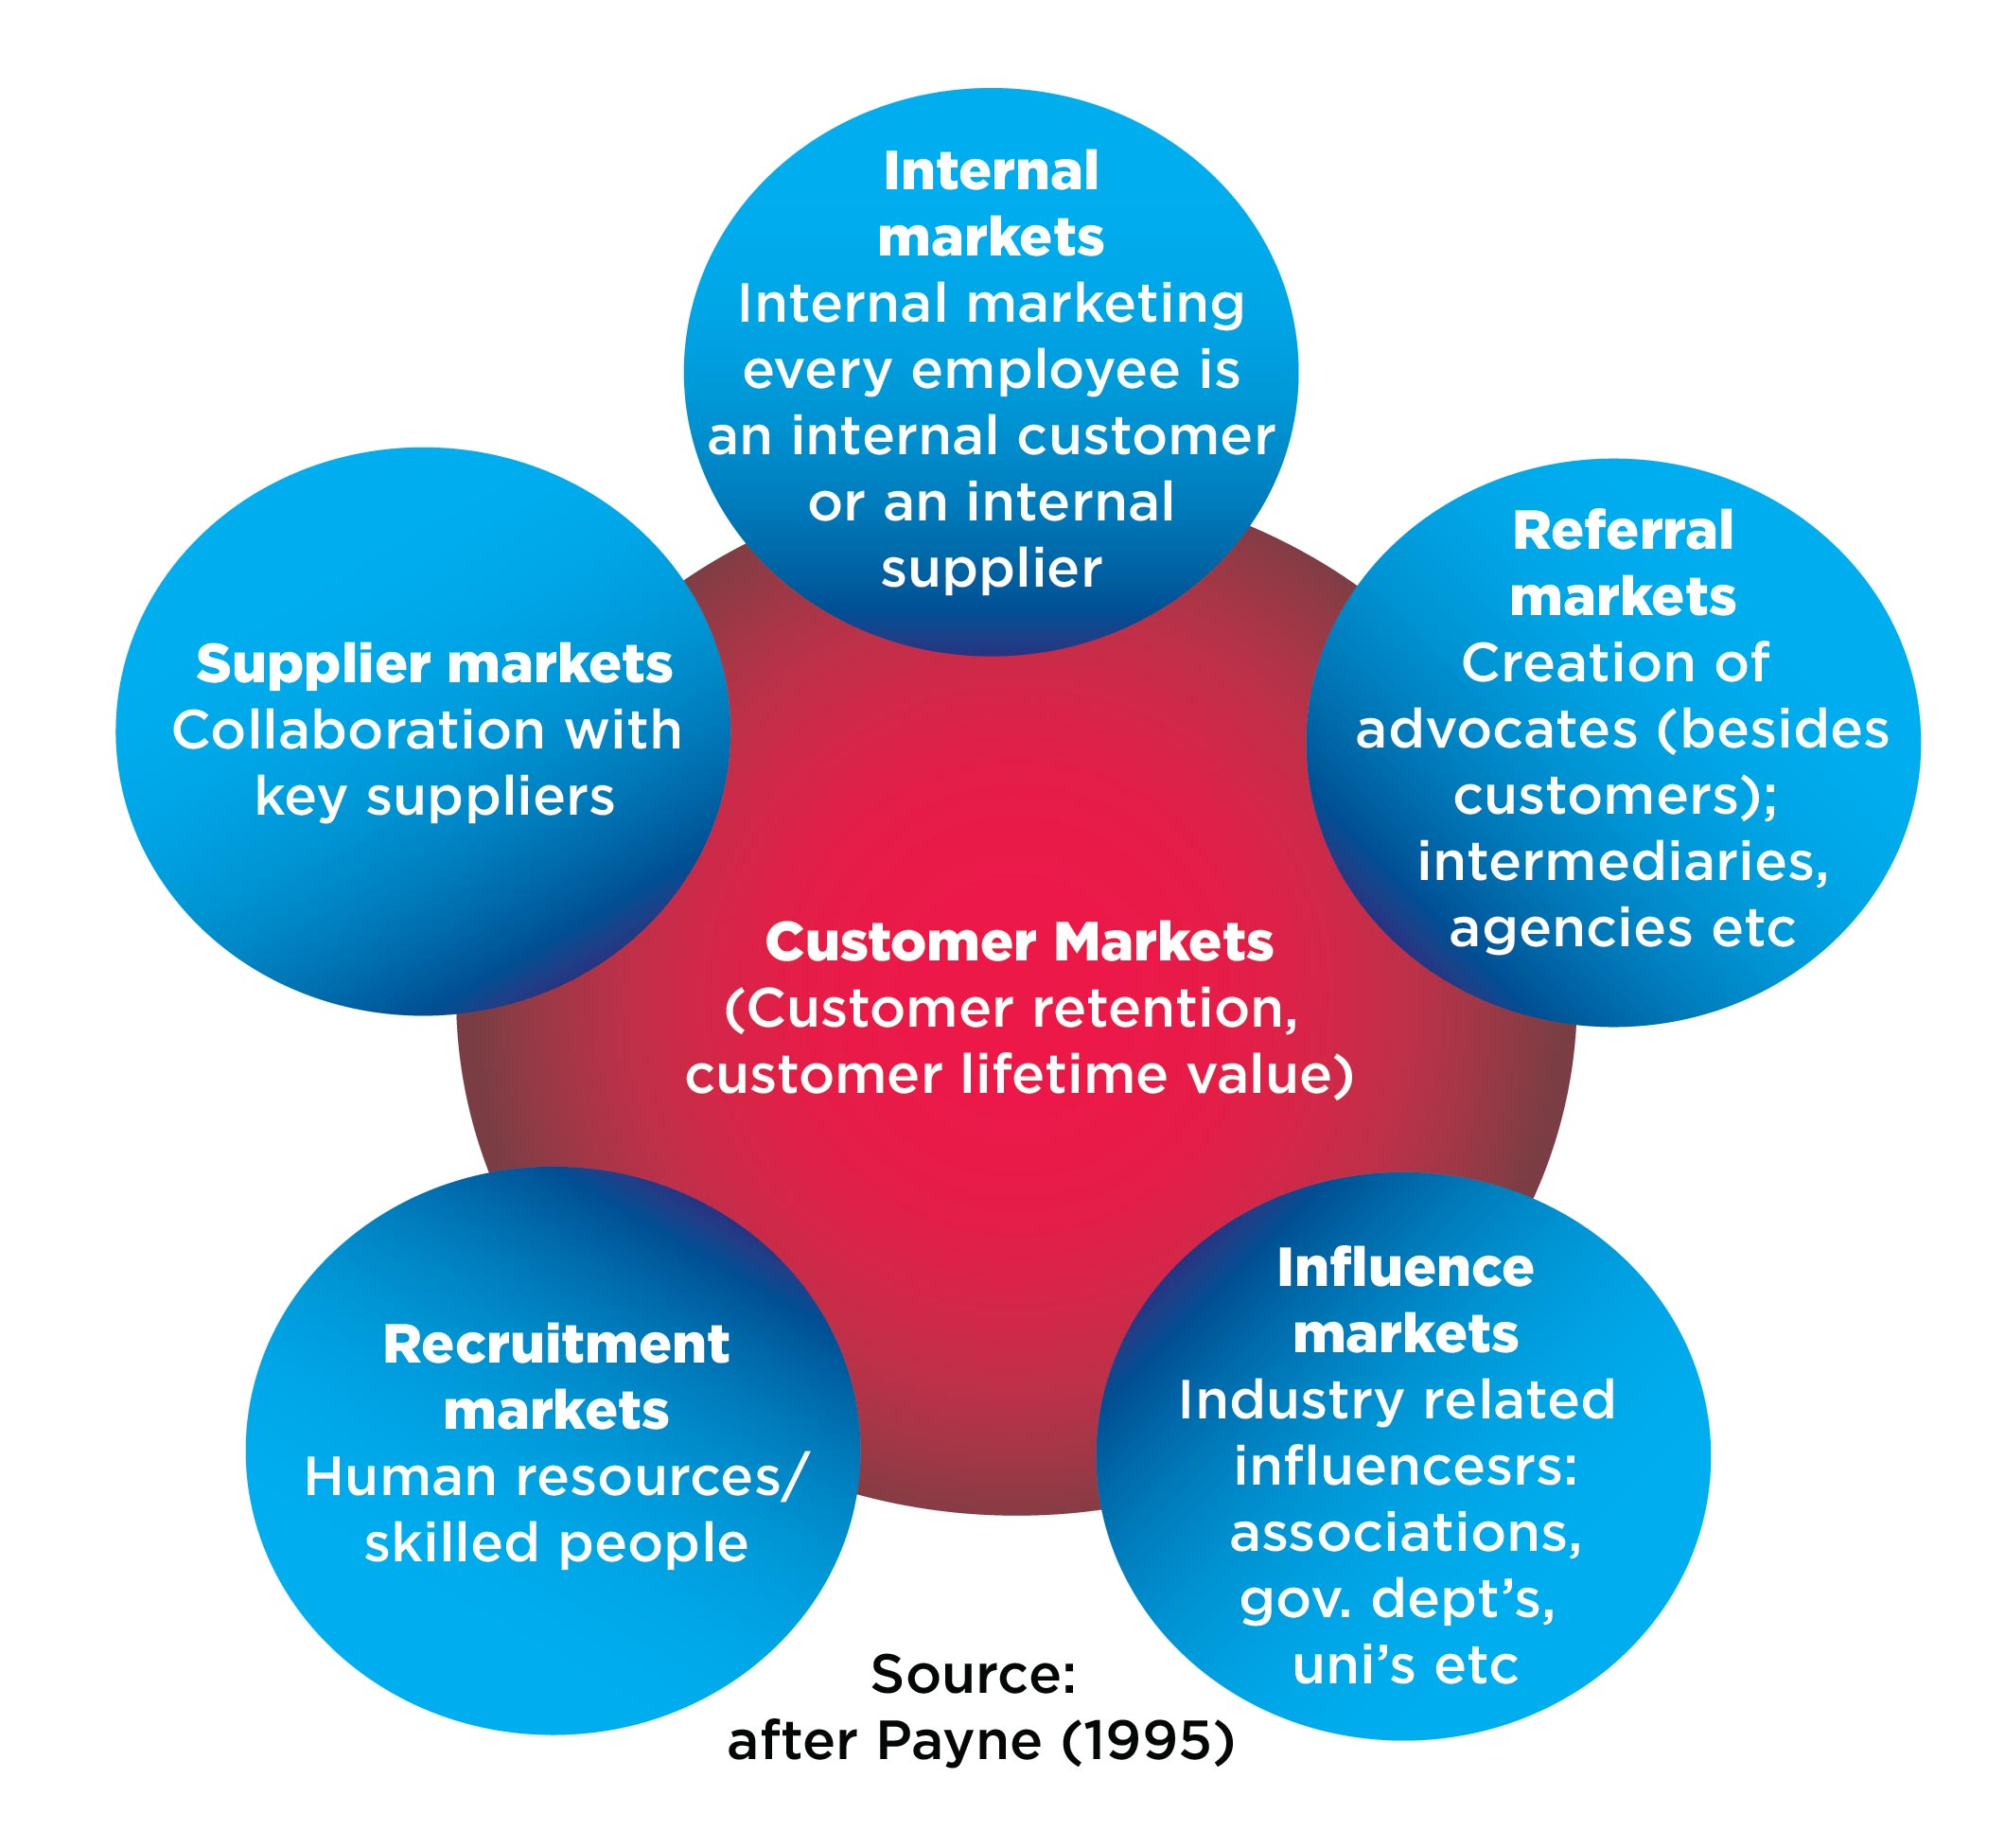 evaluate the contribution of relationship marketing activities to the effectiveness of the marketing What is the difference between efficiency and effectiveness marketing measures efficiency vs effectiveness definition & explanation i think many would think the.